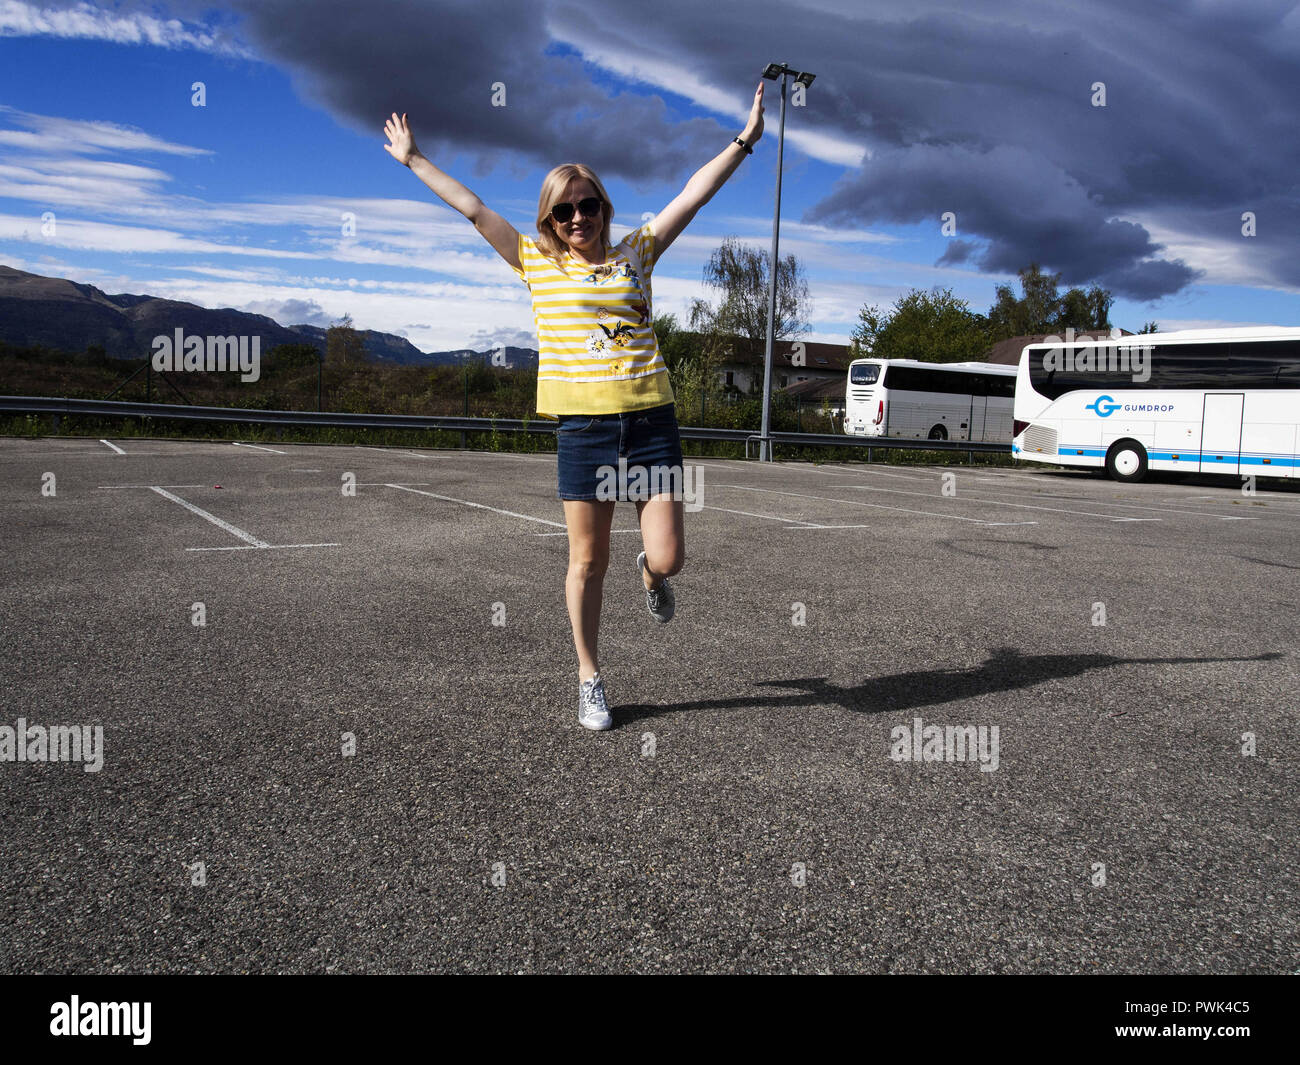 September 22, 2018 - Ferney-Voltaire, France - A woman seen jumping in joy on the parking next to Hotel F1. Hotel Formule 1, or hotelF1 in France, is an international chain of ''super low budget'' or ''no frills'' hotels owned by AccorHotels. Credit: Igor Golovniov/SOPA Images/ZUMA Wire/Alamy Live News - Stock Image